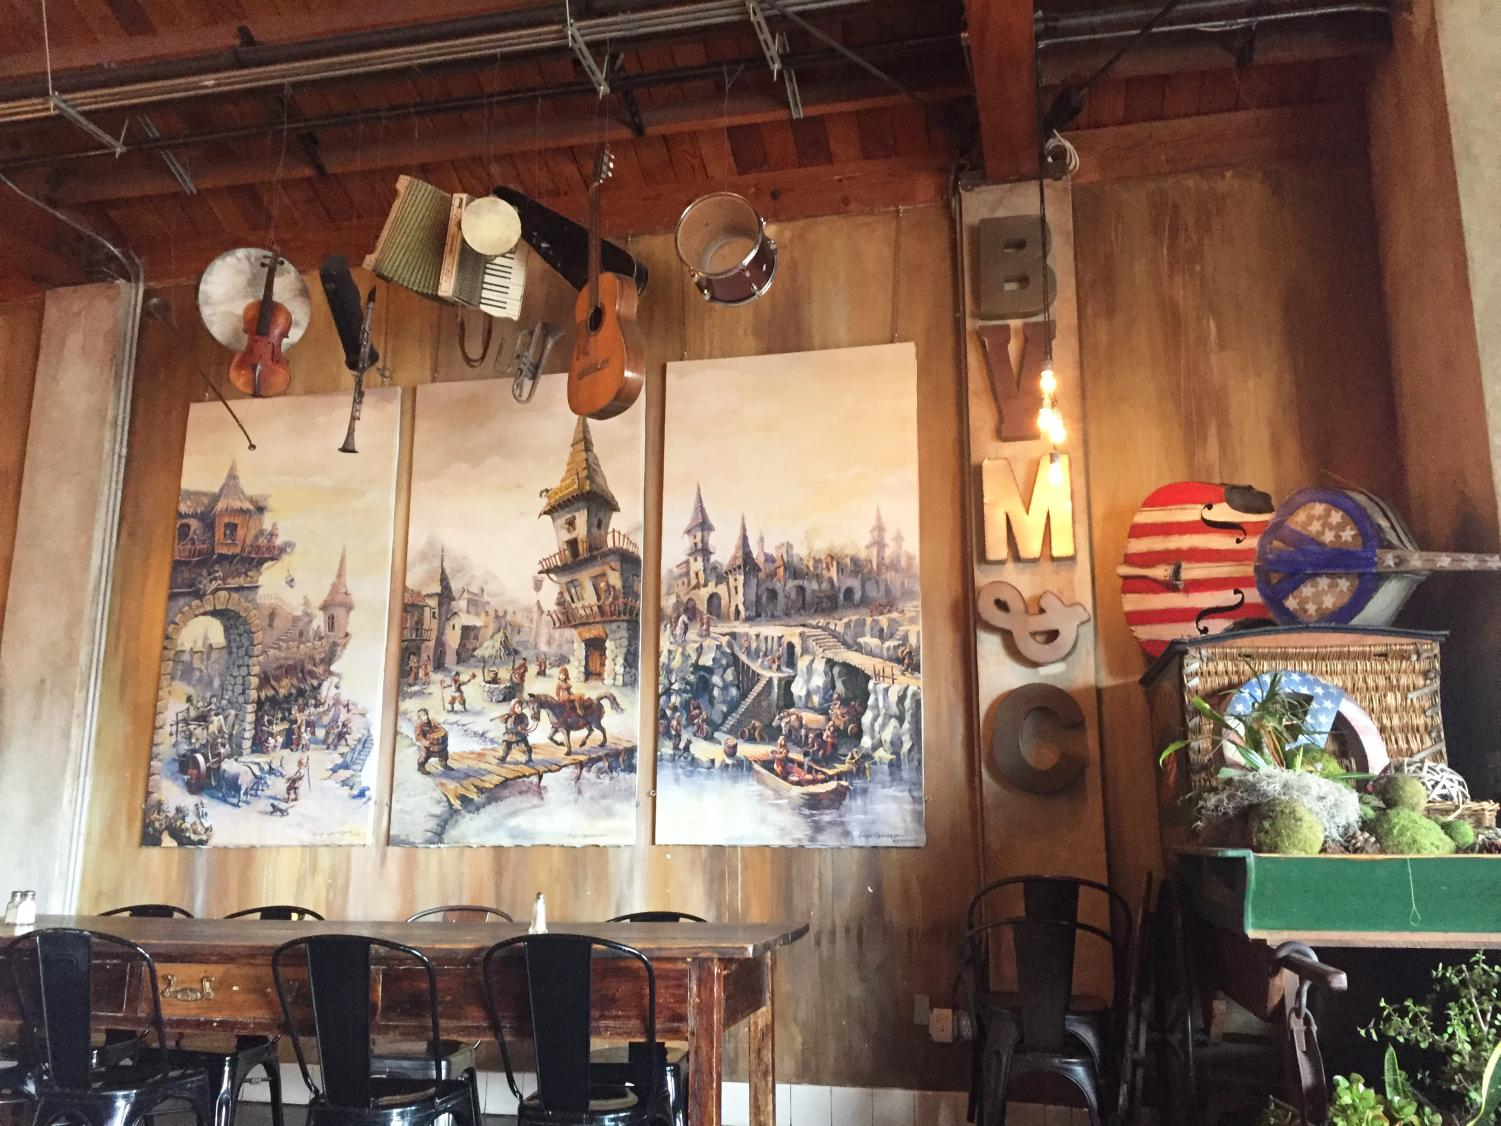 Bon Vivant's rustic look is complete with hanging musical instruments.